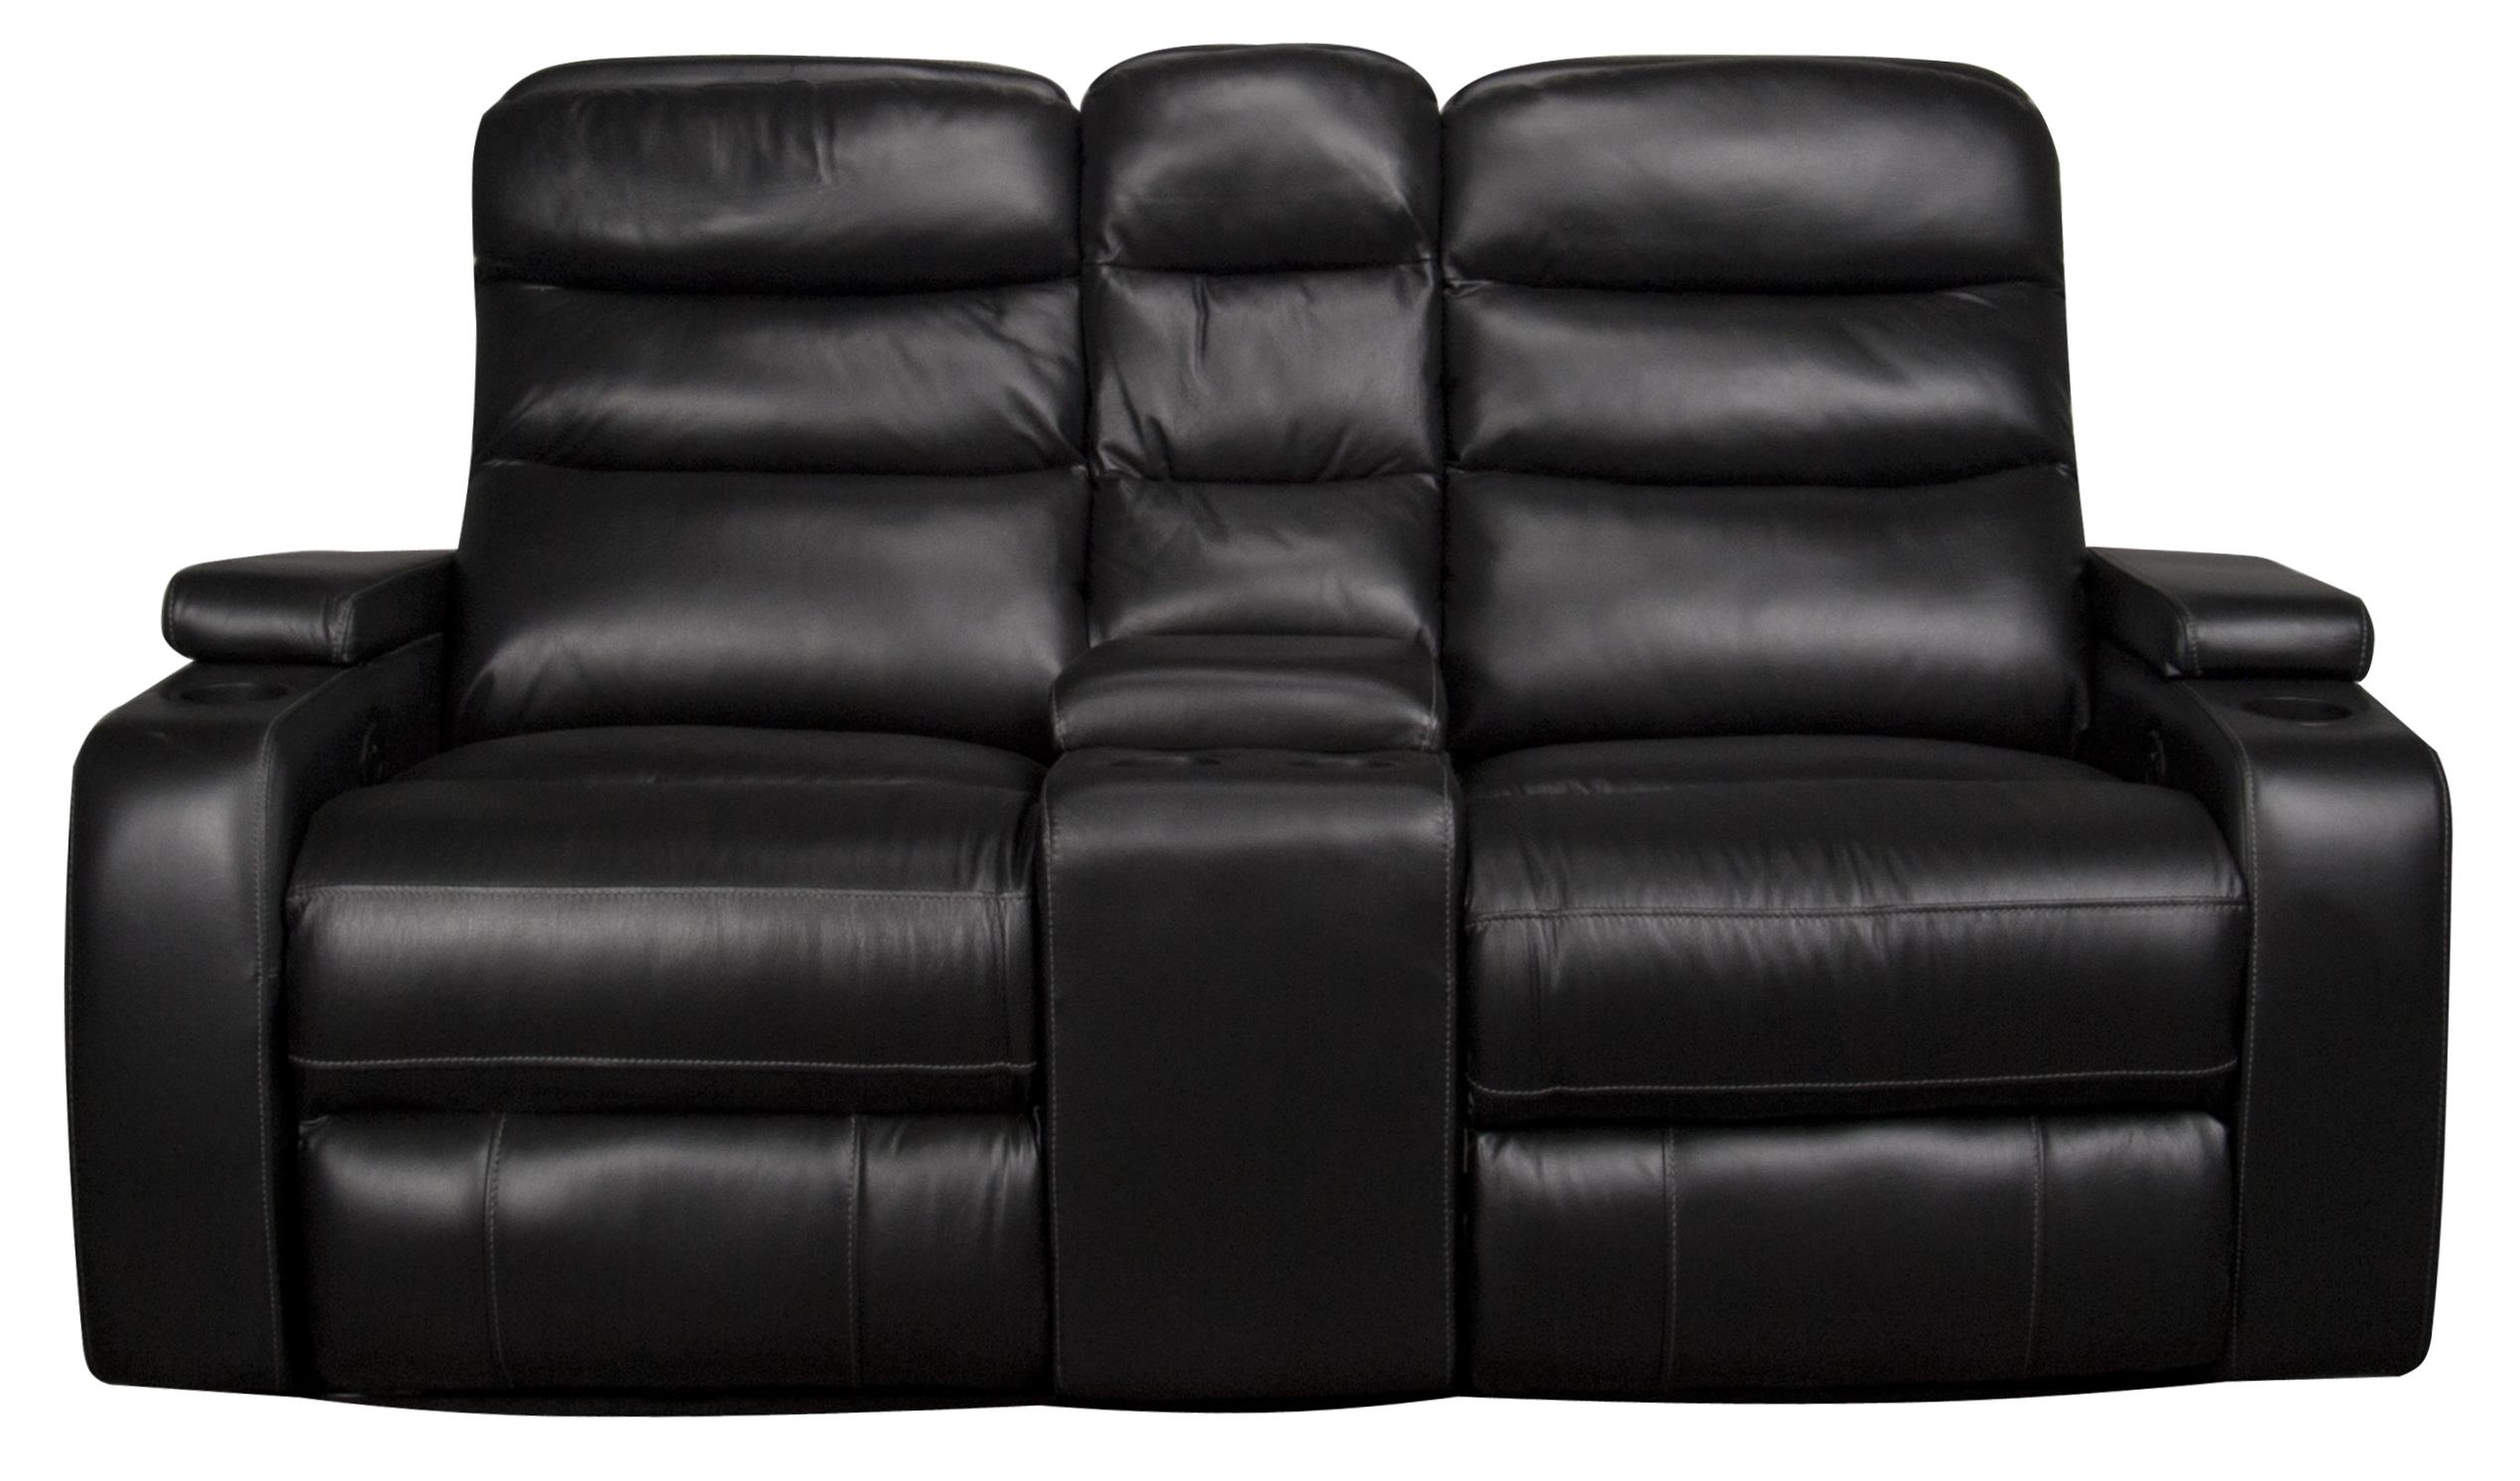 Morris Home Robert  Robert Dual Power Leather-Match* Loveseat - Item Number: 134119183